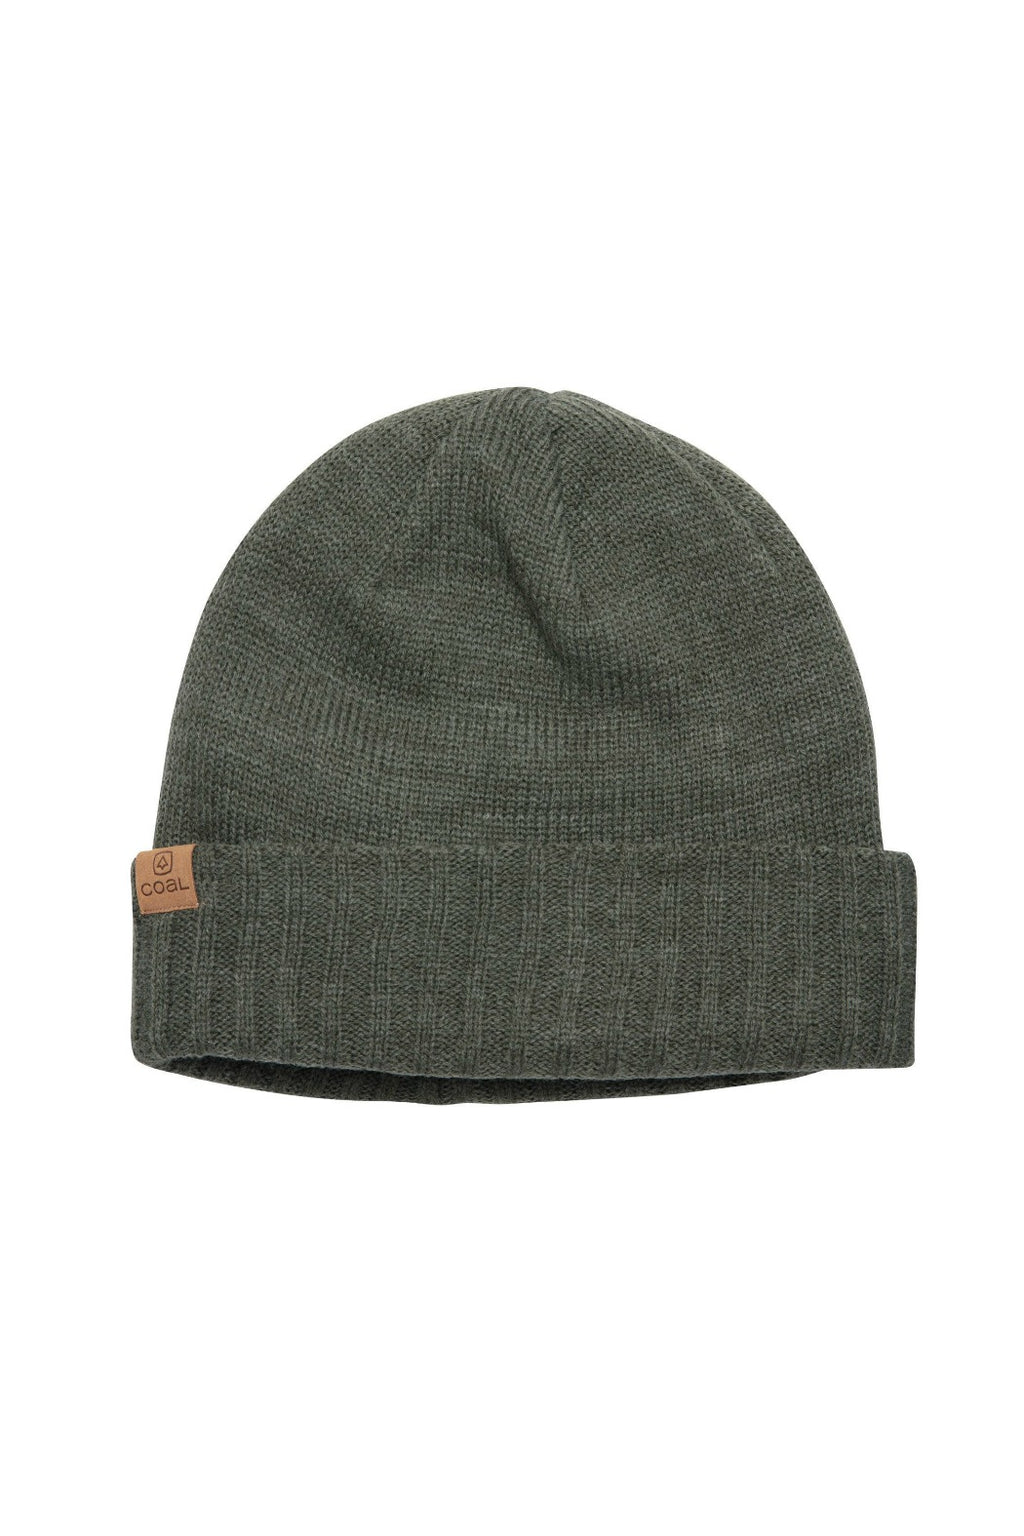 Coal Rogers Fleece Lined Beanie - Heather Olive